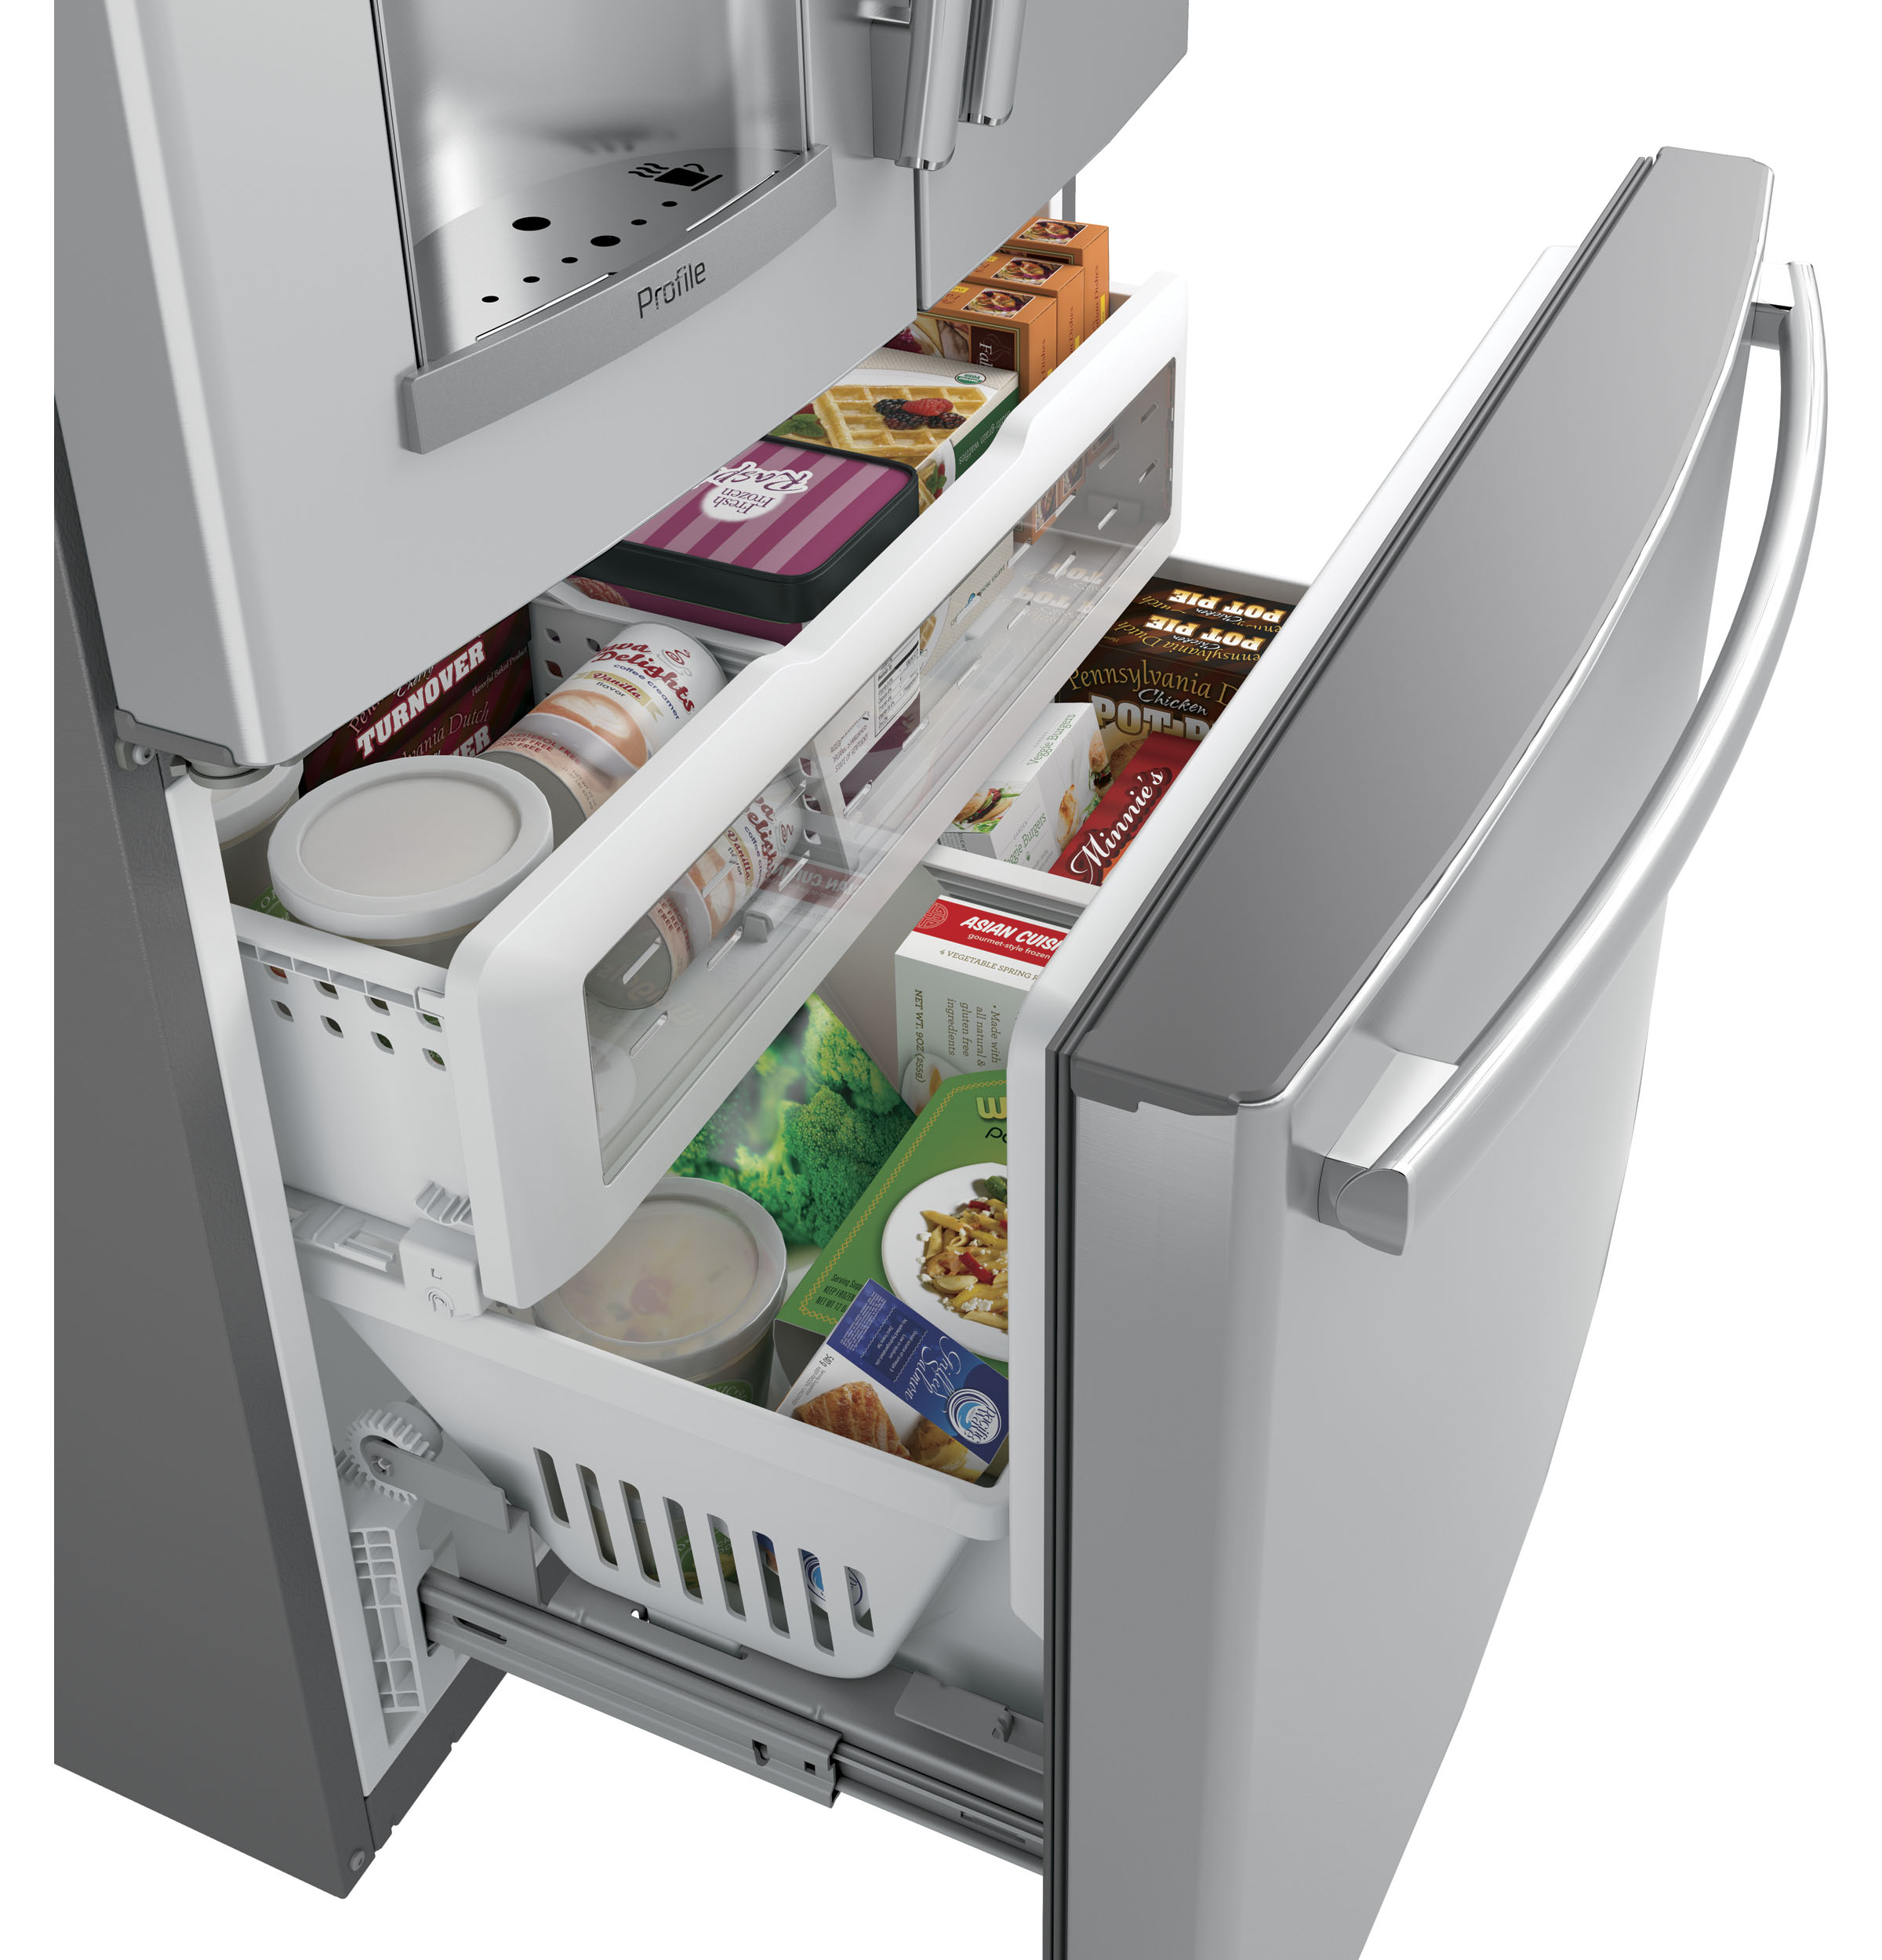 Model: PYE22PSKSS | GE Profile GE Profile™ Series ENERGY STAR® 22.2 Cu. Ft. Counter-Depth French-Door Refrigerator with Keurig® K-Cup® Brewing System